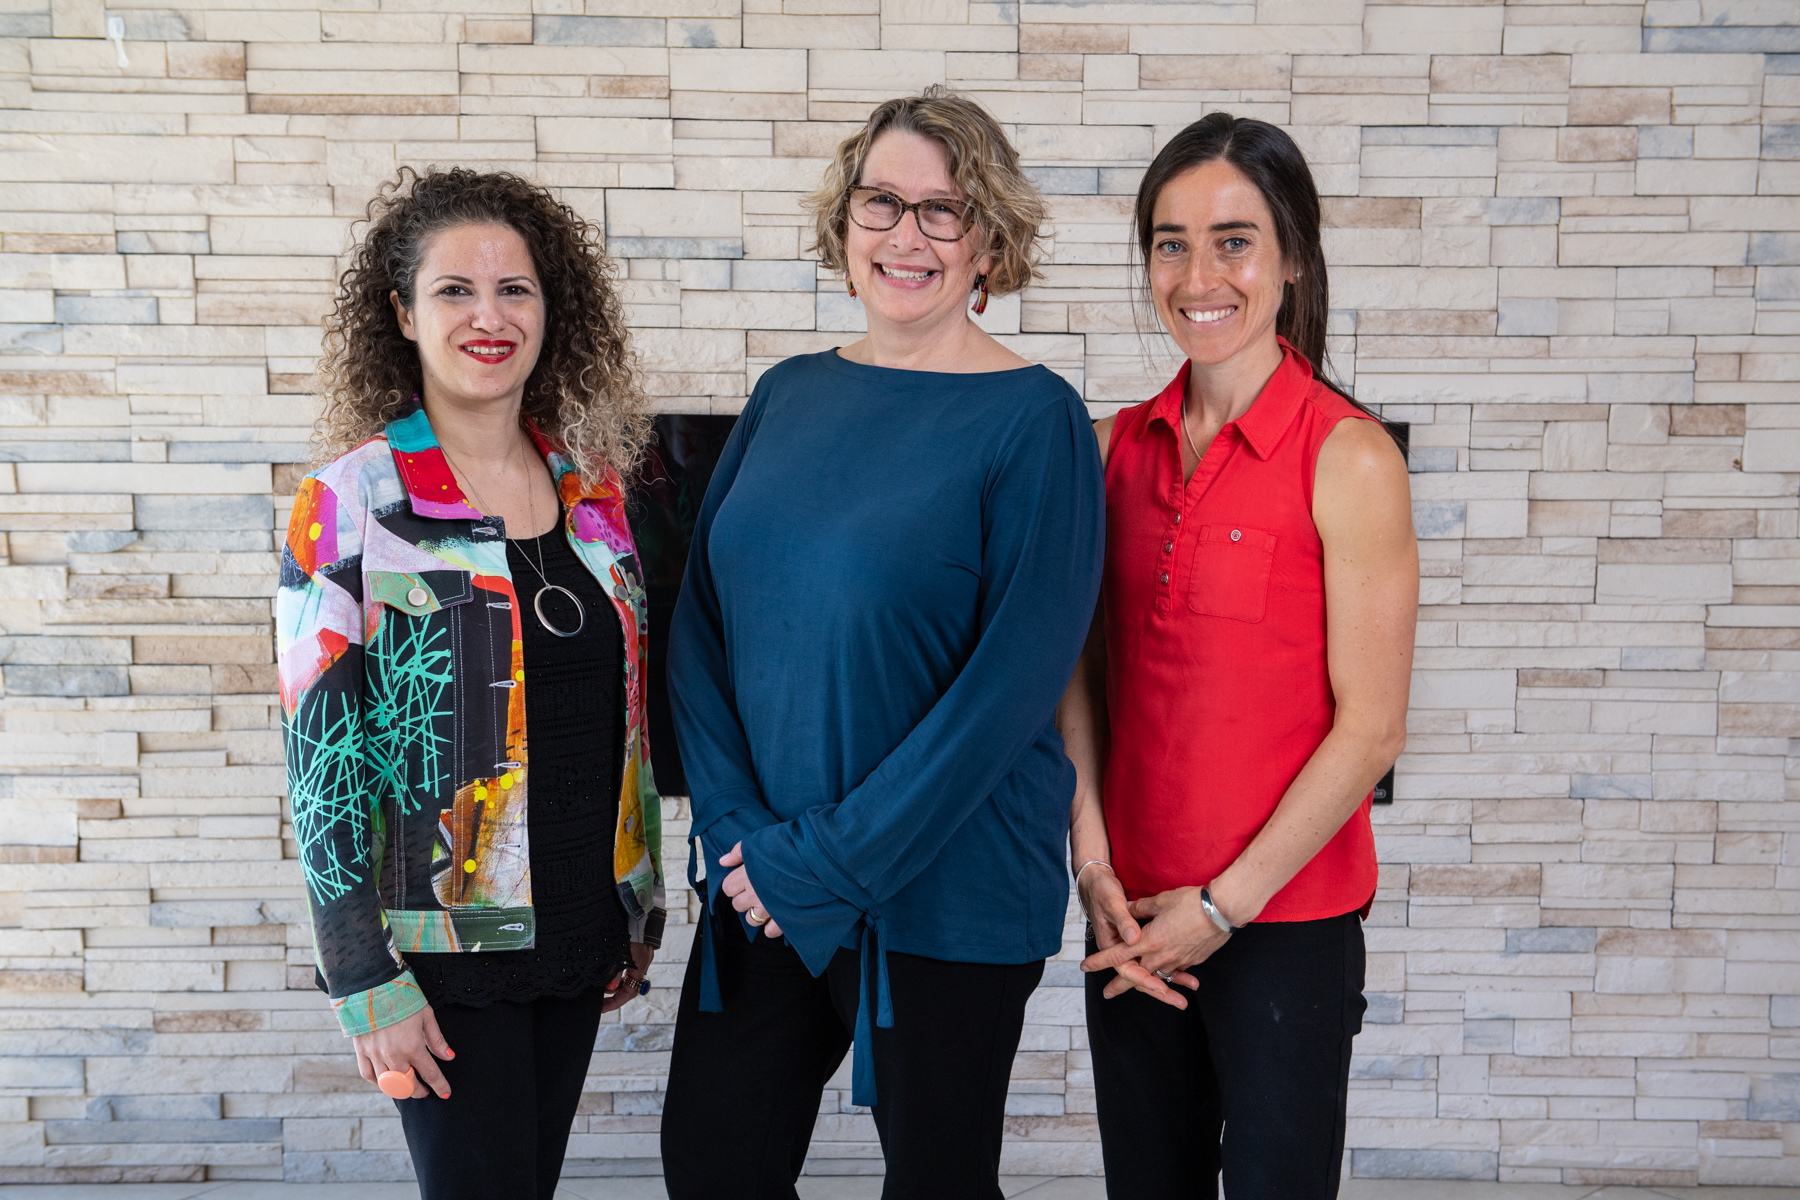 Dr. Rima Azar (co-director), Dr. Alison Luke (research associate), Dr. Shelley Doucet (co-director)